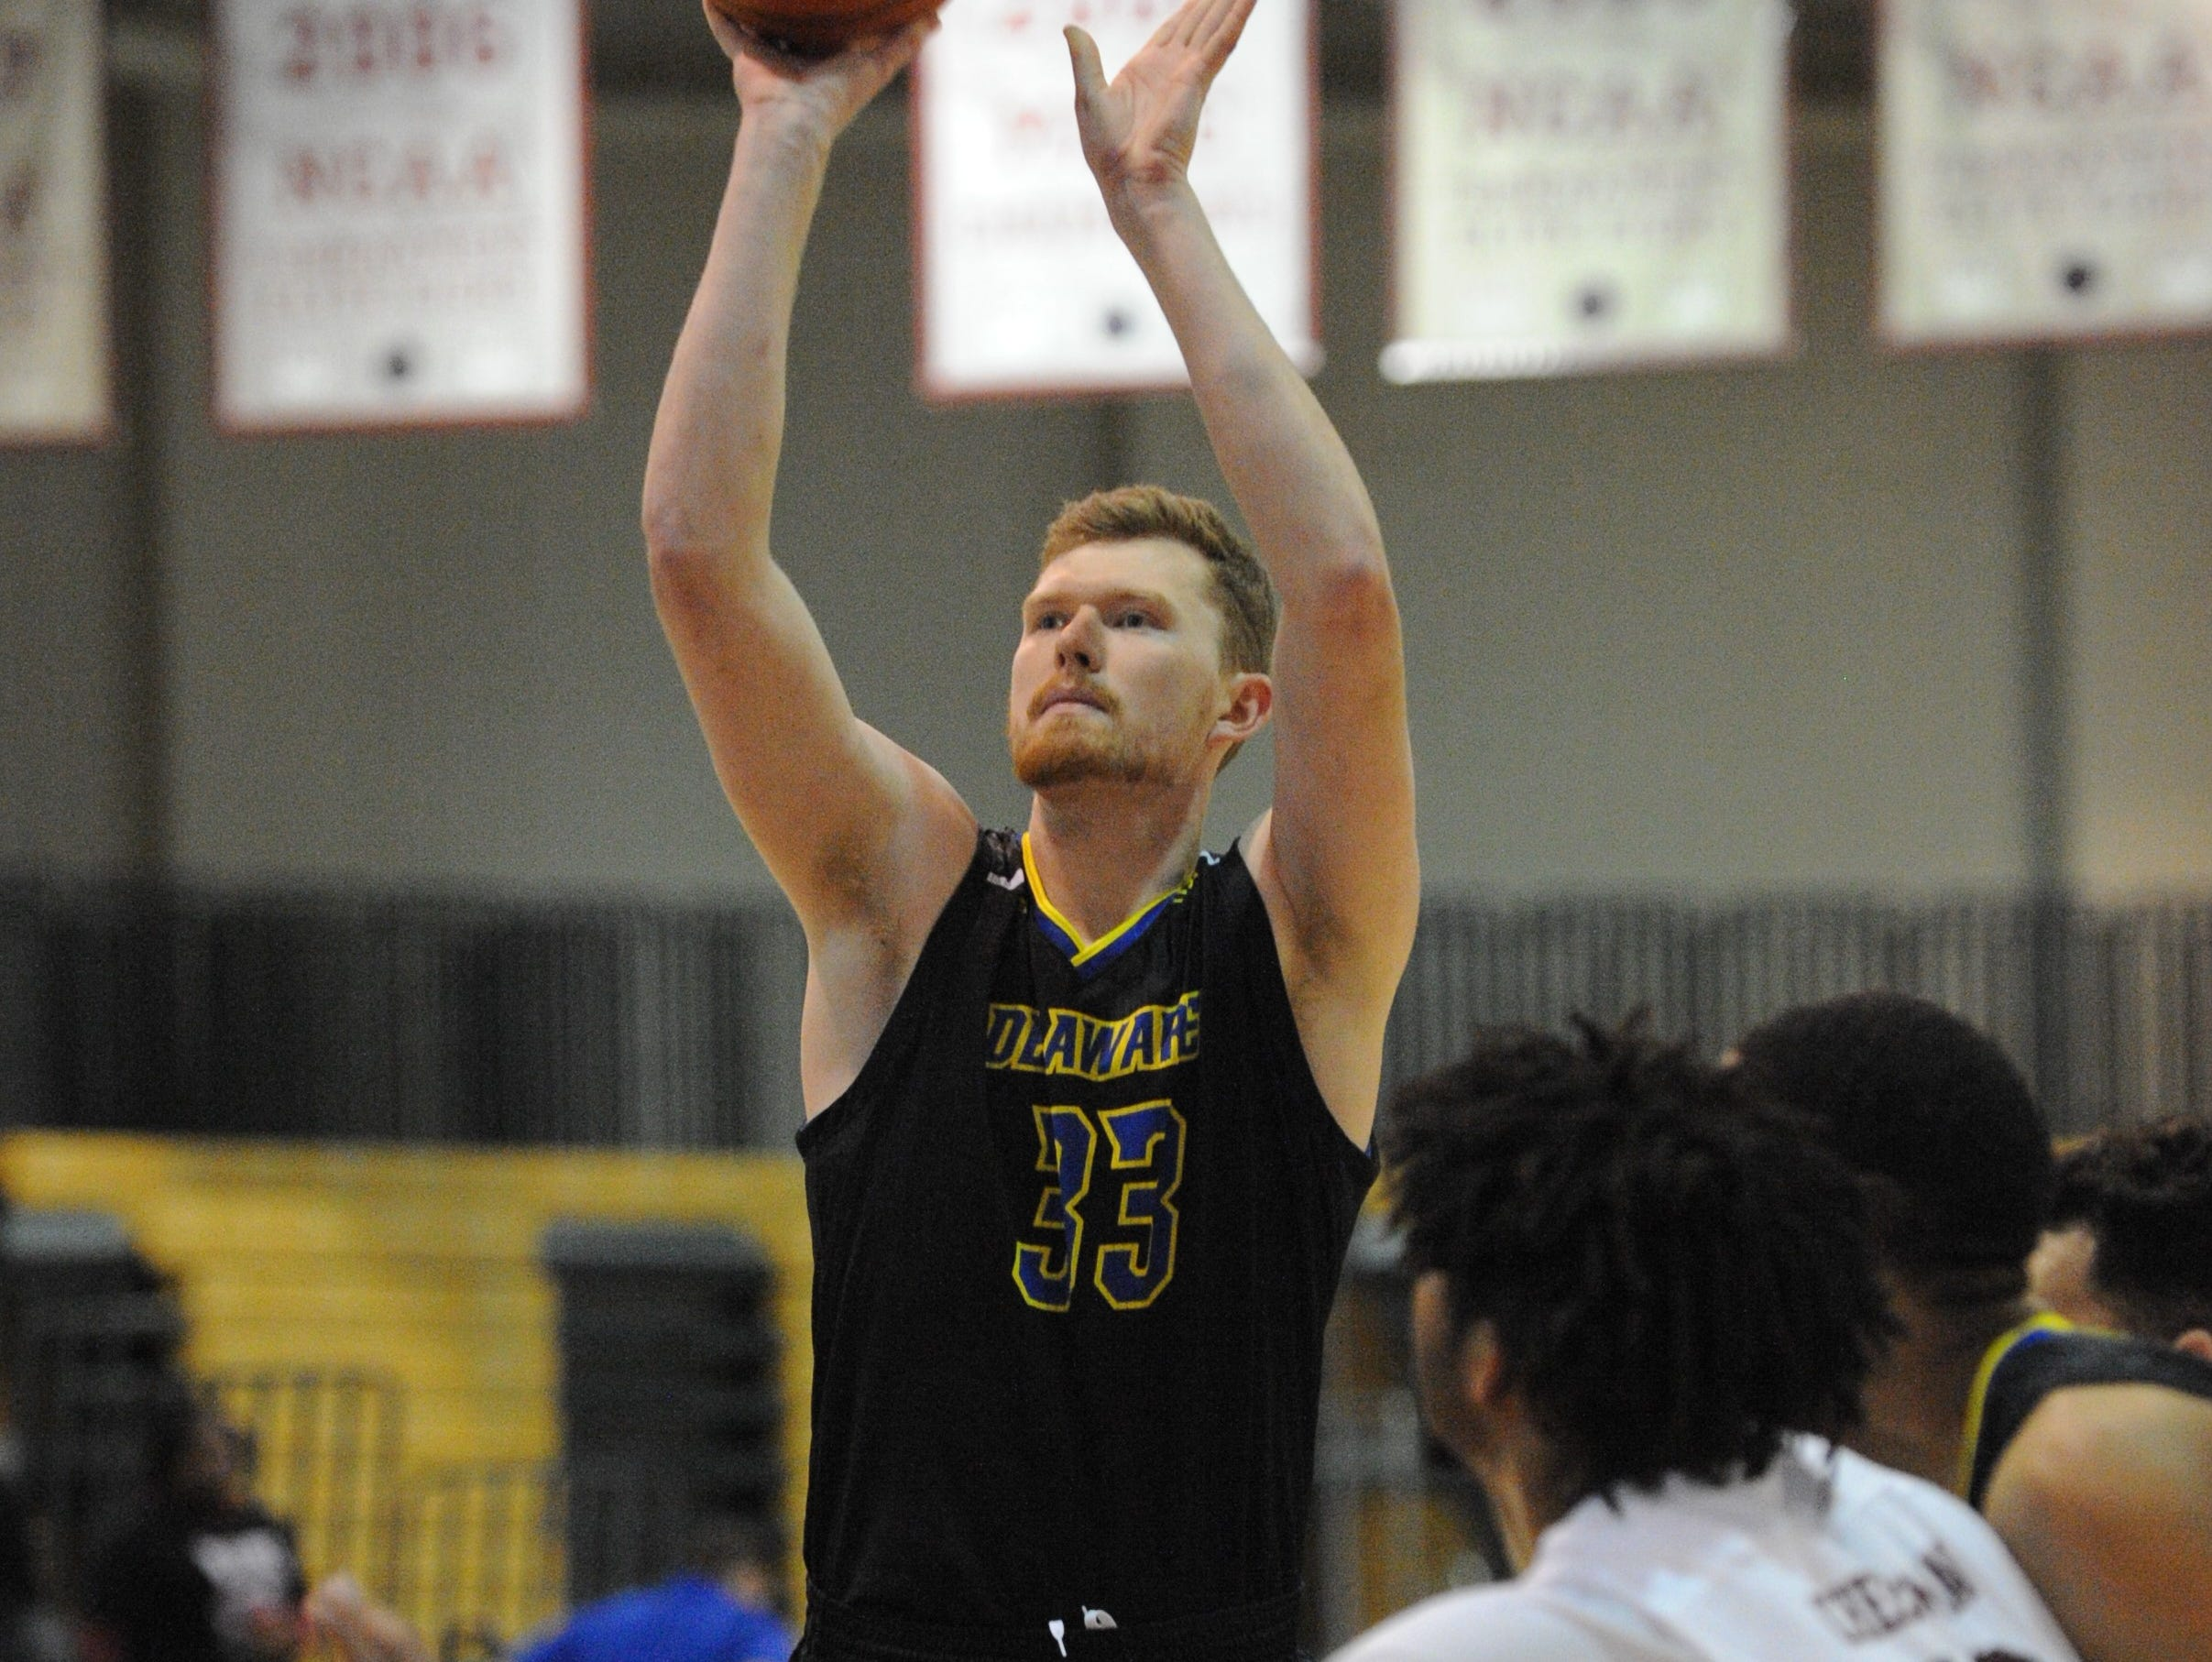 University of Delaware forward Collin Goss takes a foul shot against the University of Maryland Eastern Shore on Friday, Nov. 30, 2018. The Blue Hens beat the Hawks, 71-62.